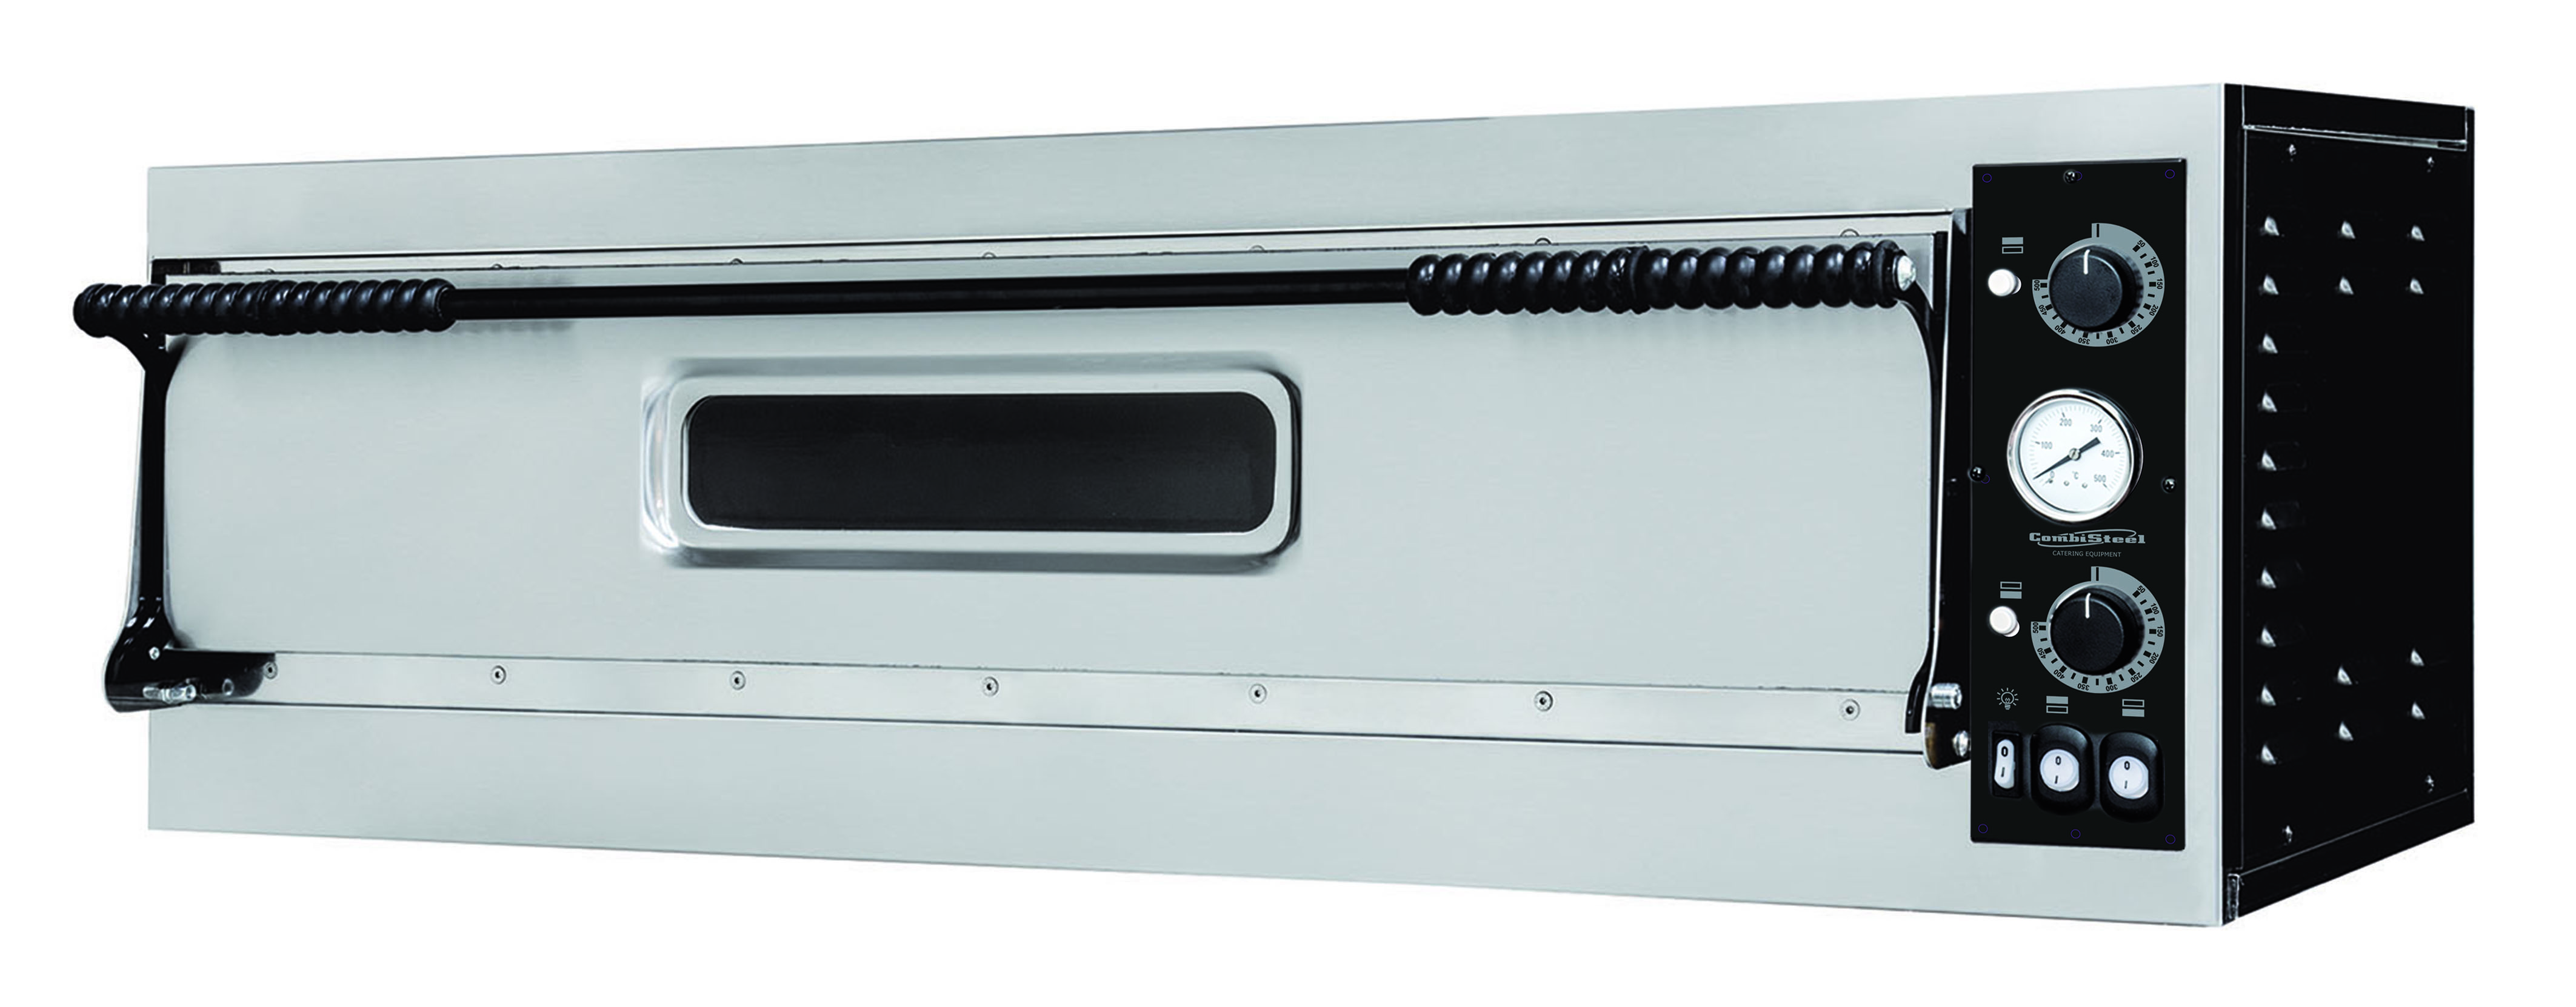 Combisteel D 600 Pizza Oven voor 3 pizza's Ø 35